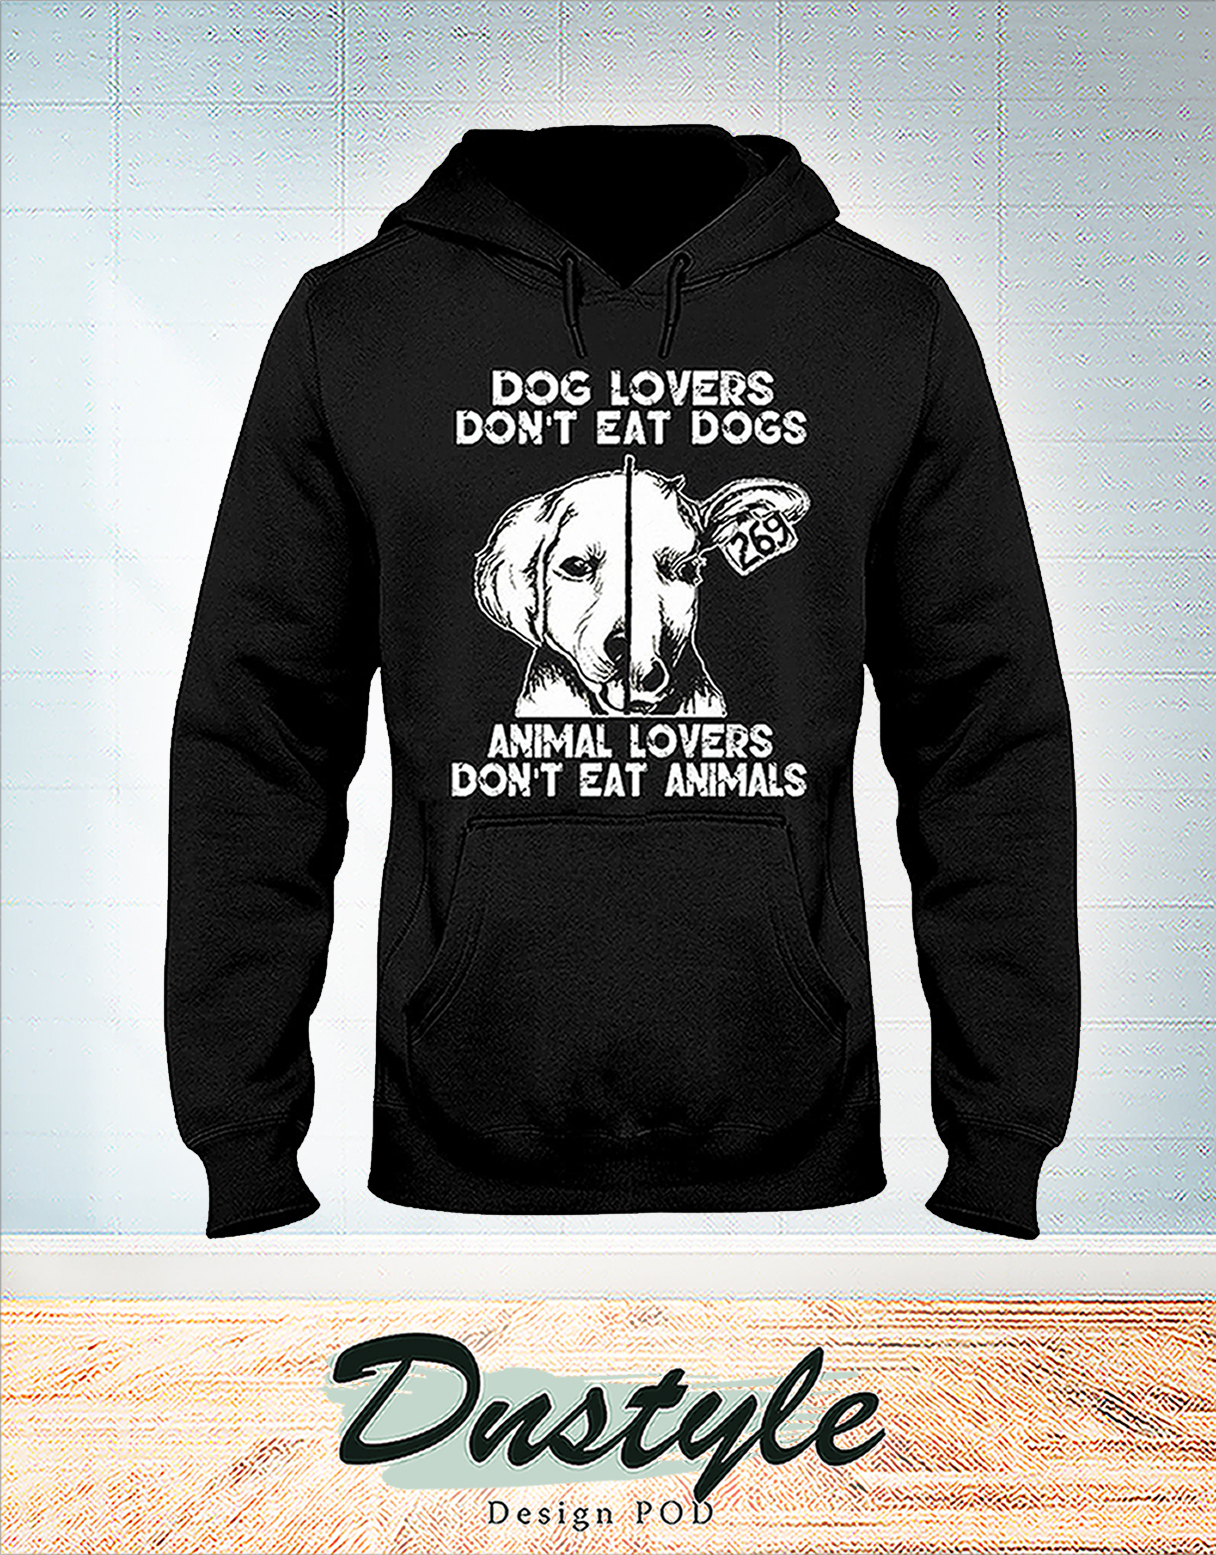 Dog lovers don't eat dogs animal lovers don't eat animals hoodie